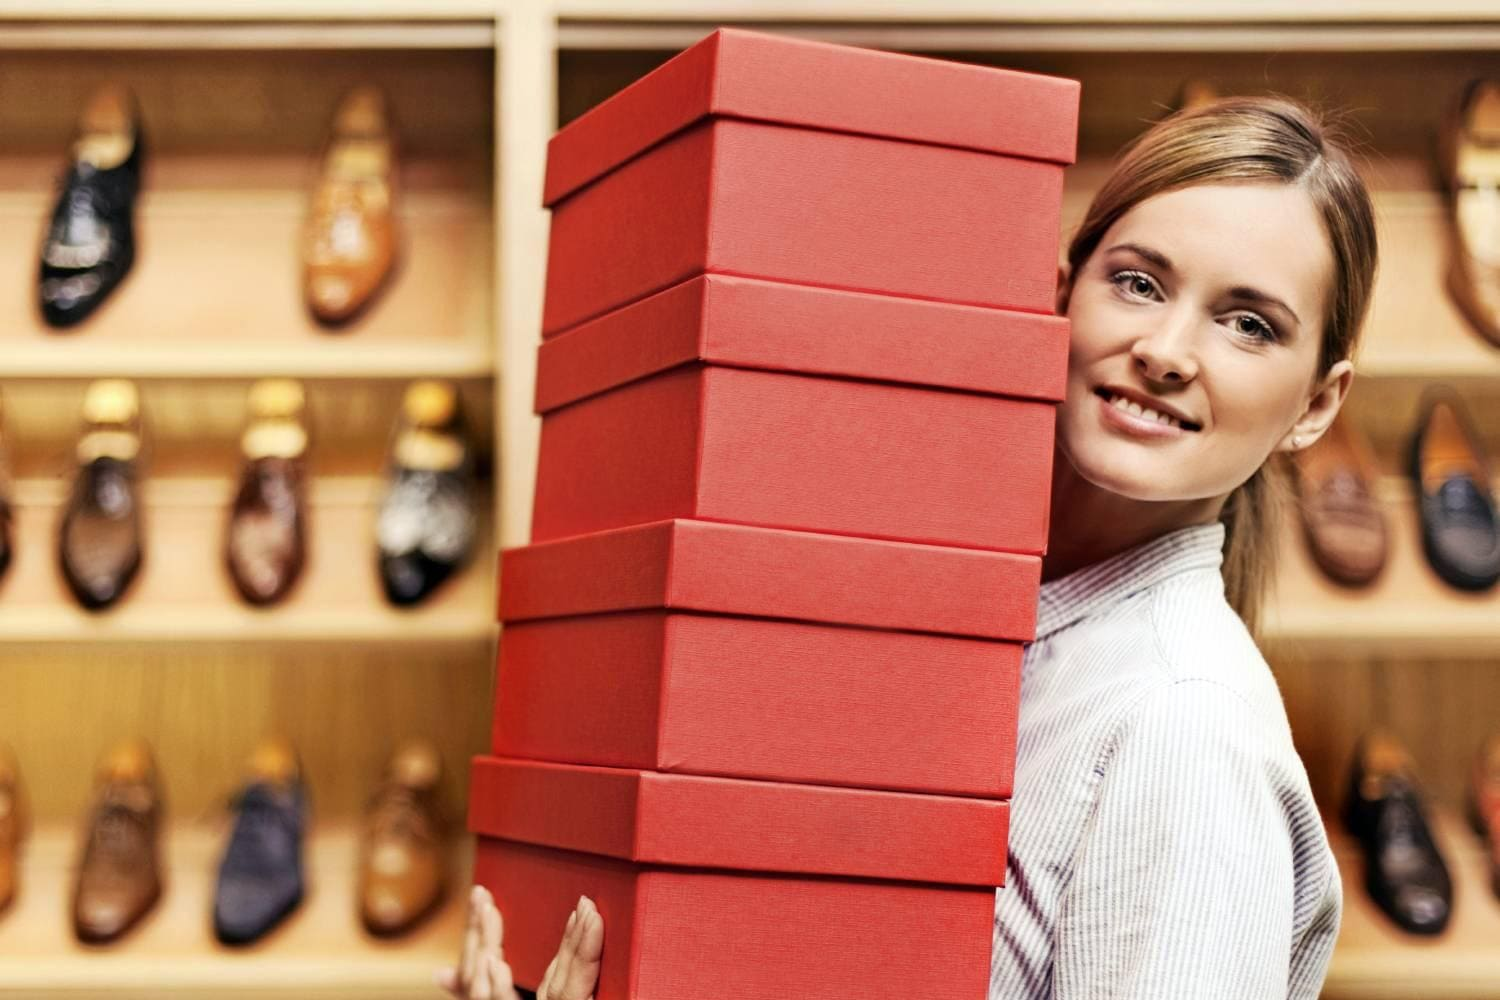 Woman in shoe store holding shoe boxes